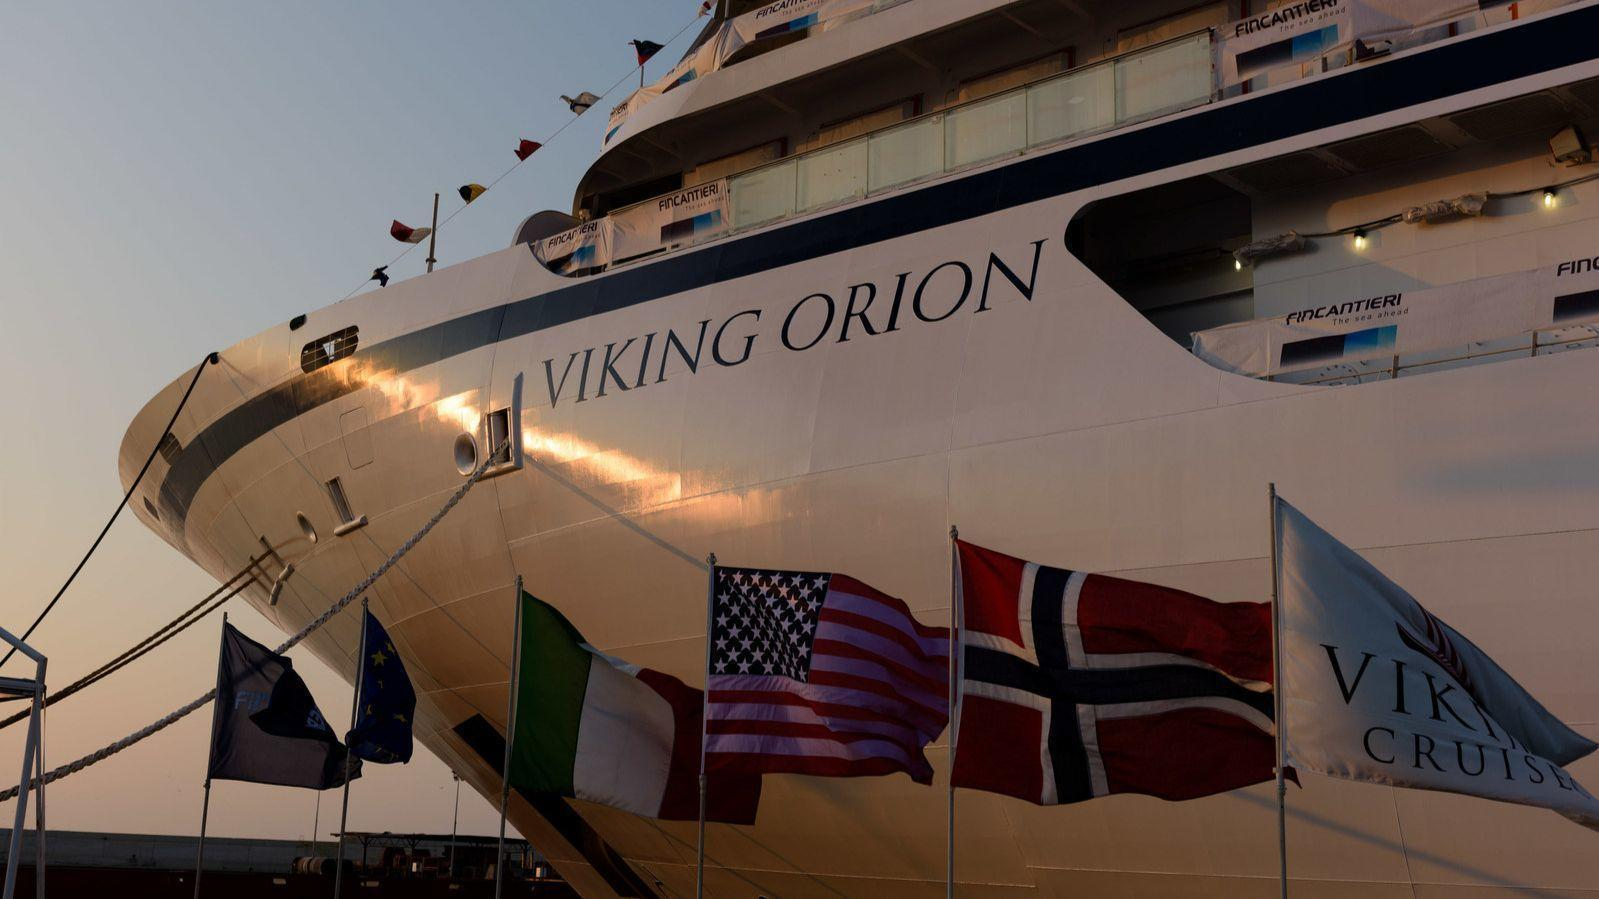 Viking Plans To Add 10 New River And Ocean Going Cruise